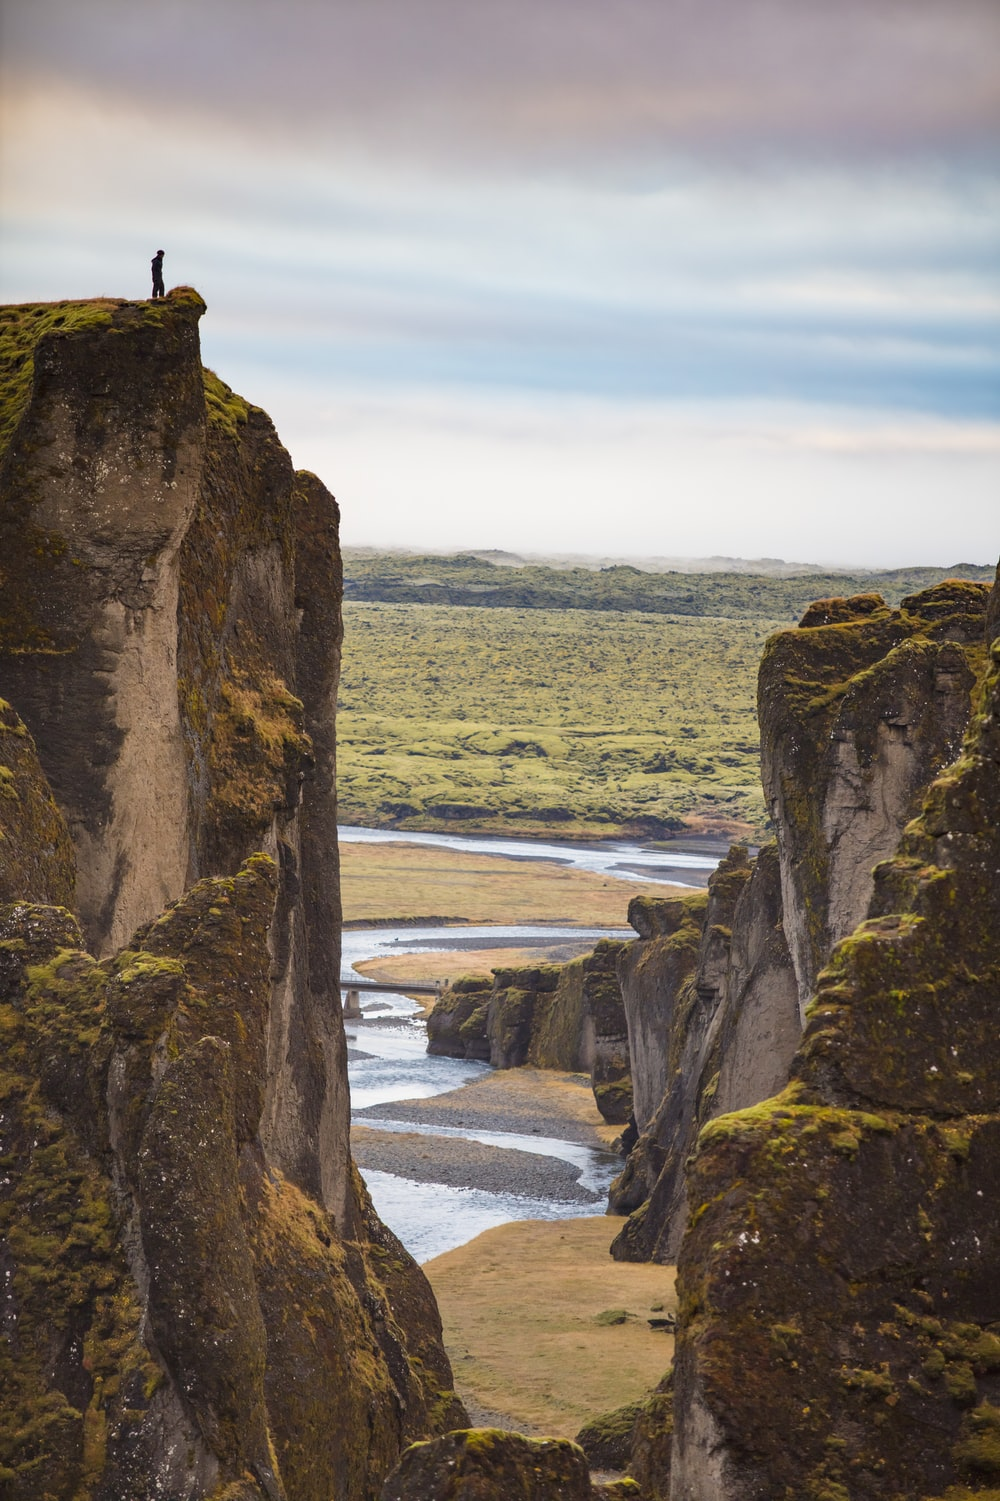 person standing on rock formation near body of water during daytime